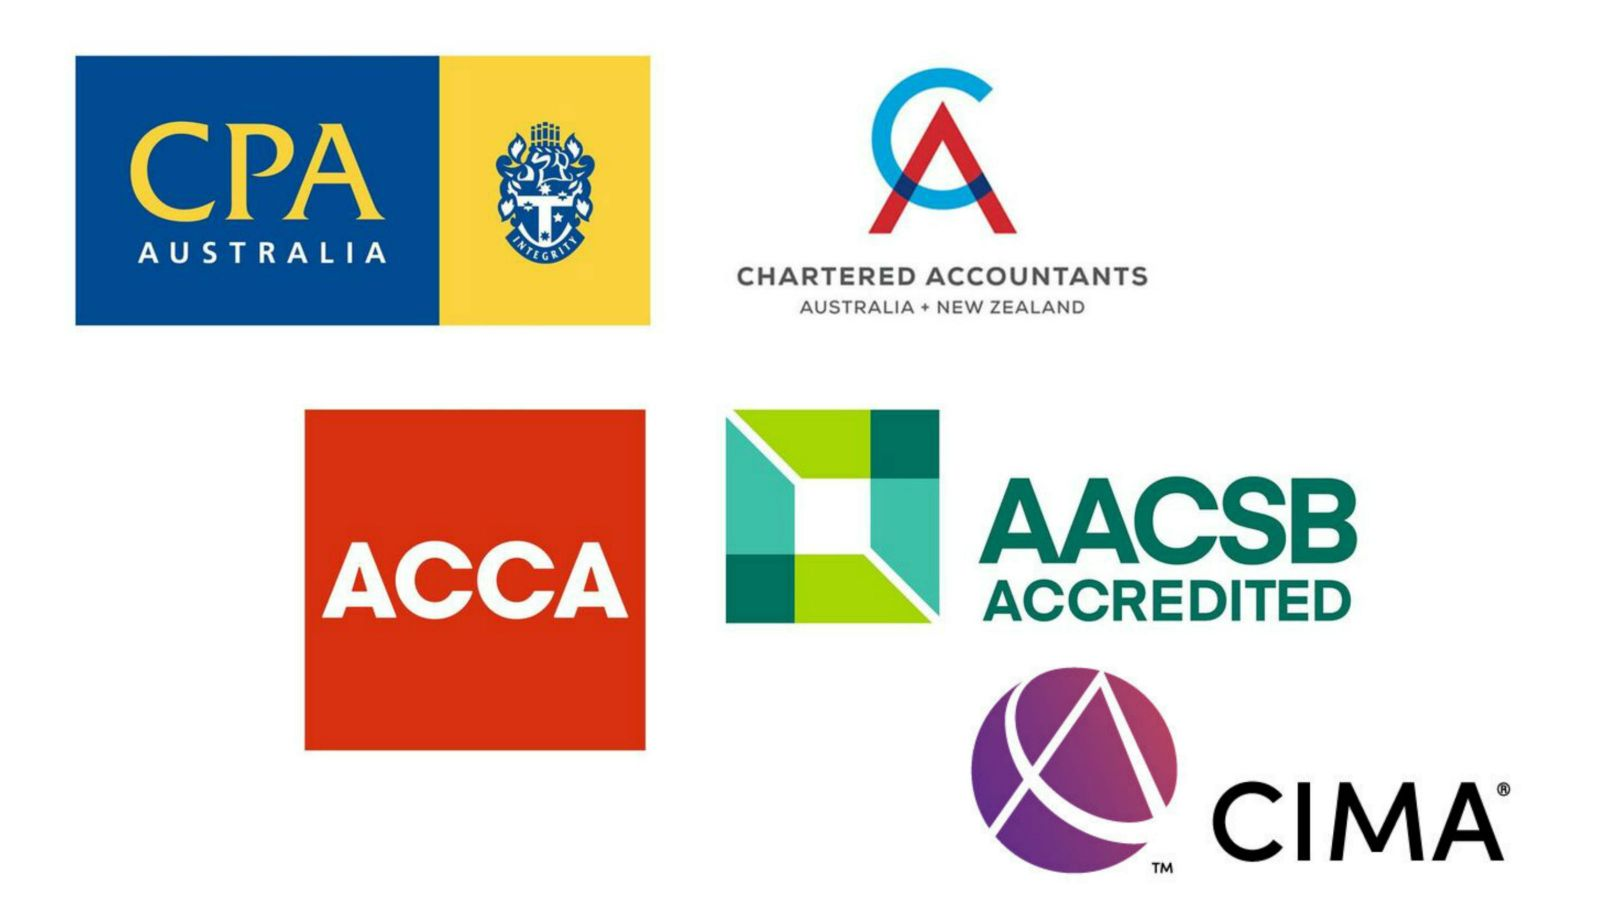 Five logos - CPA Australia, Chartered Accountants, ACCA, AACSB Accredited, CIMA.